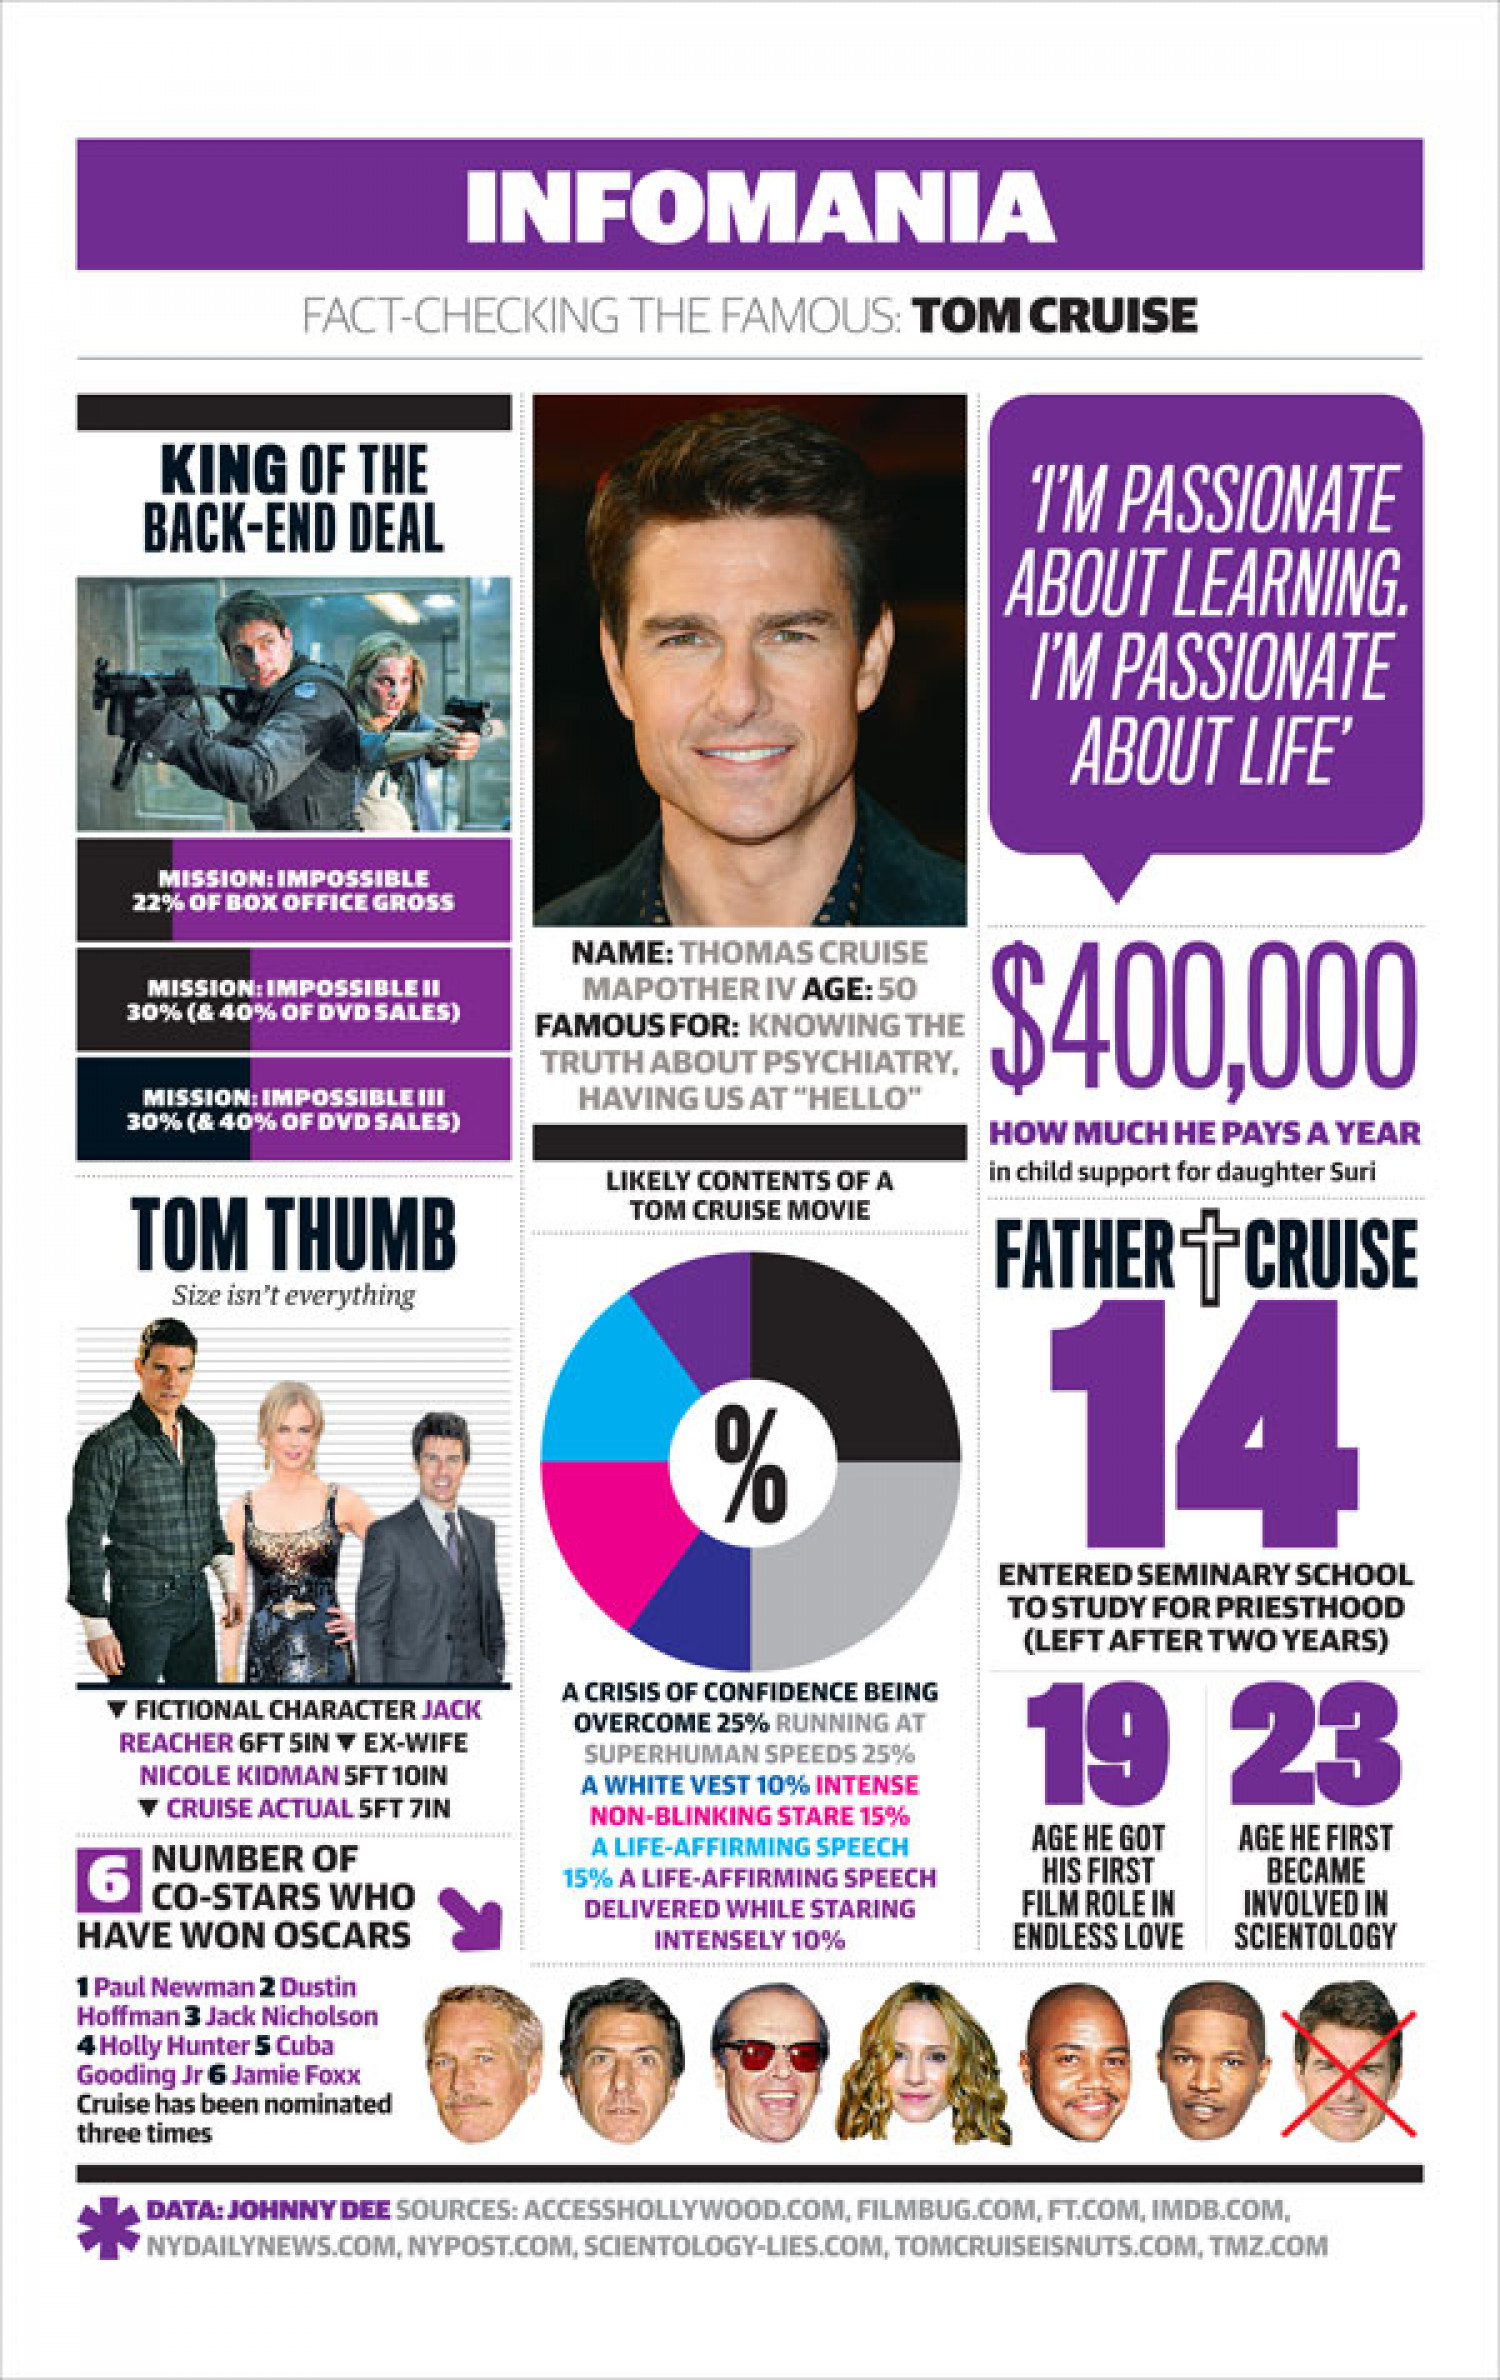 Tom Cruise: everything you need to know Infographic